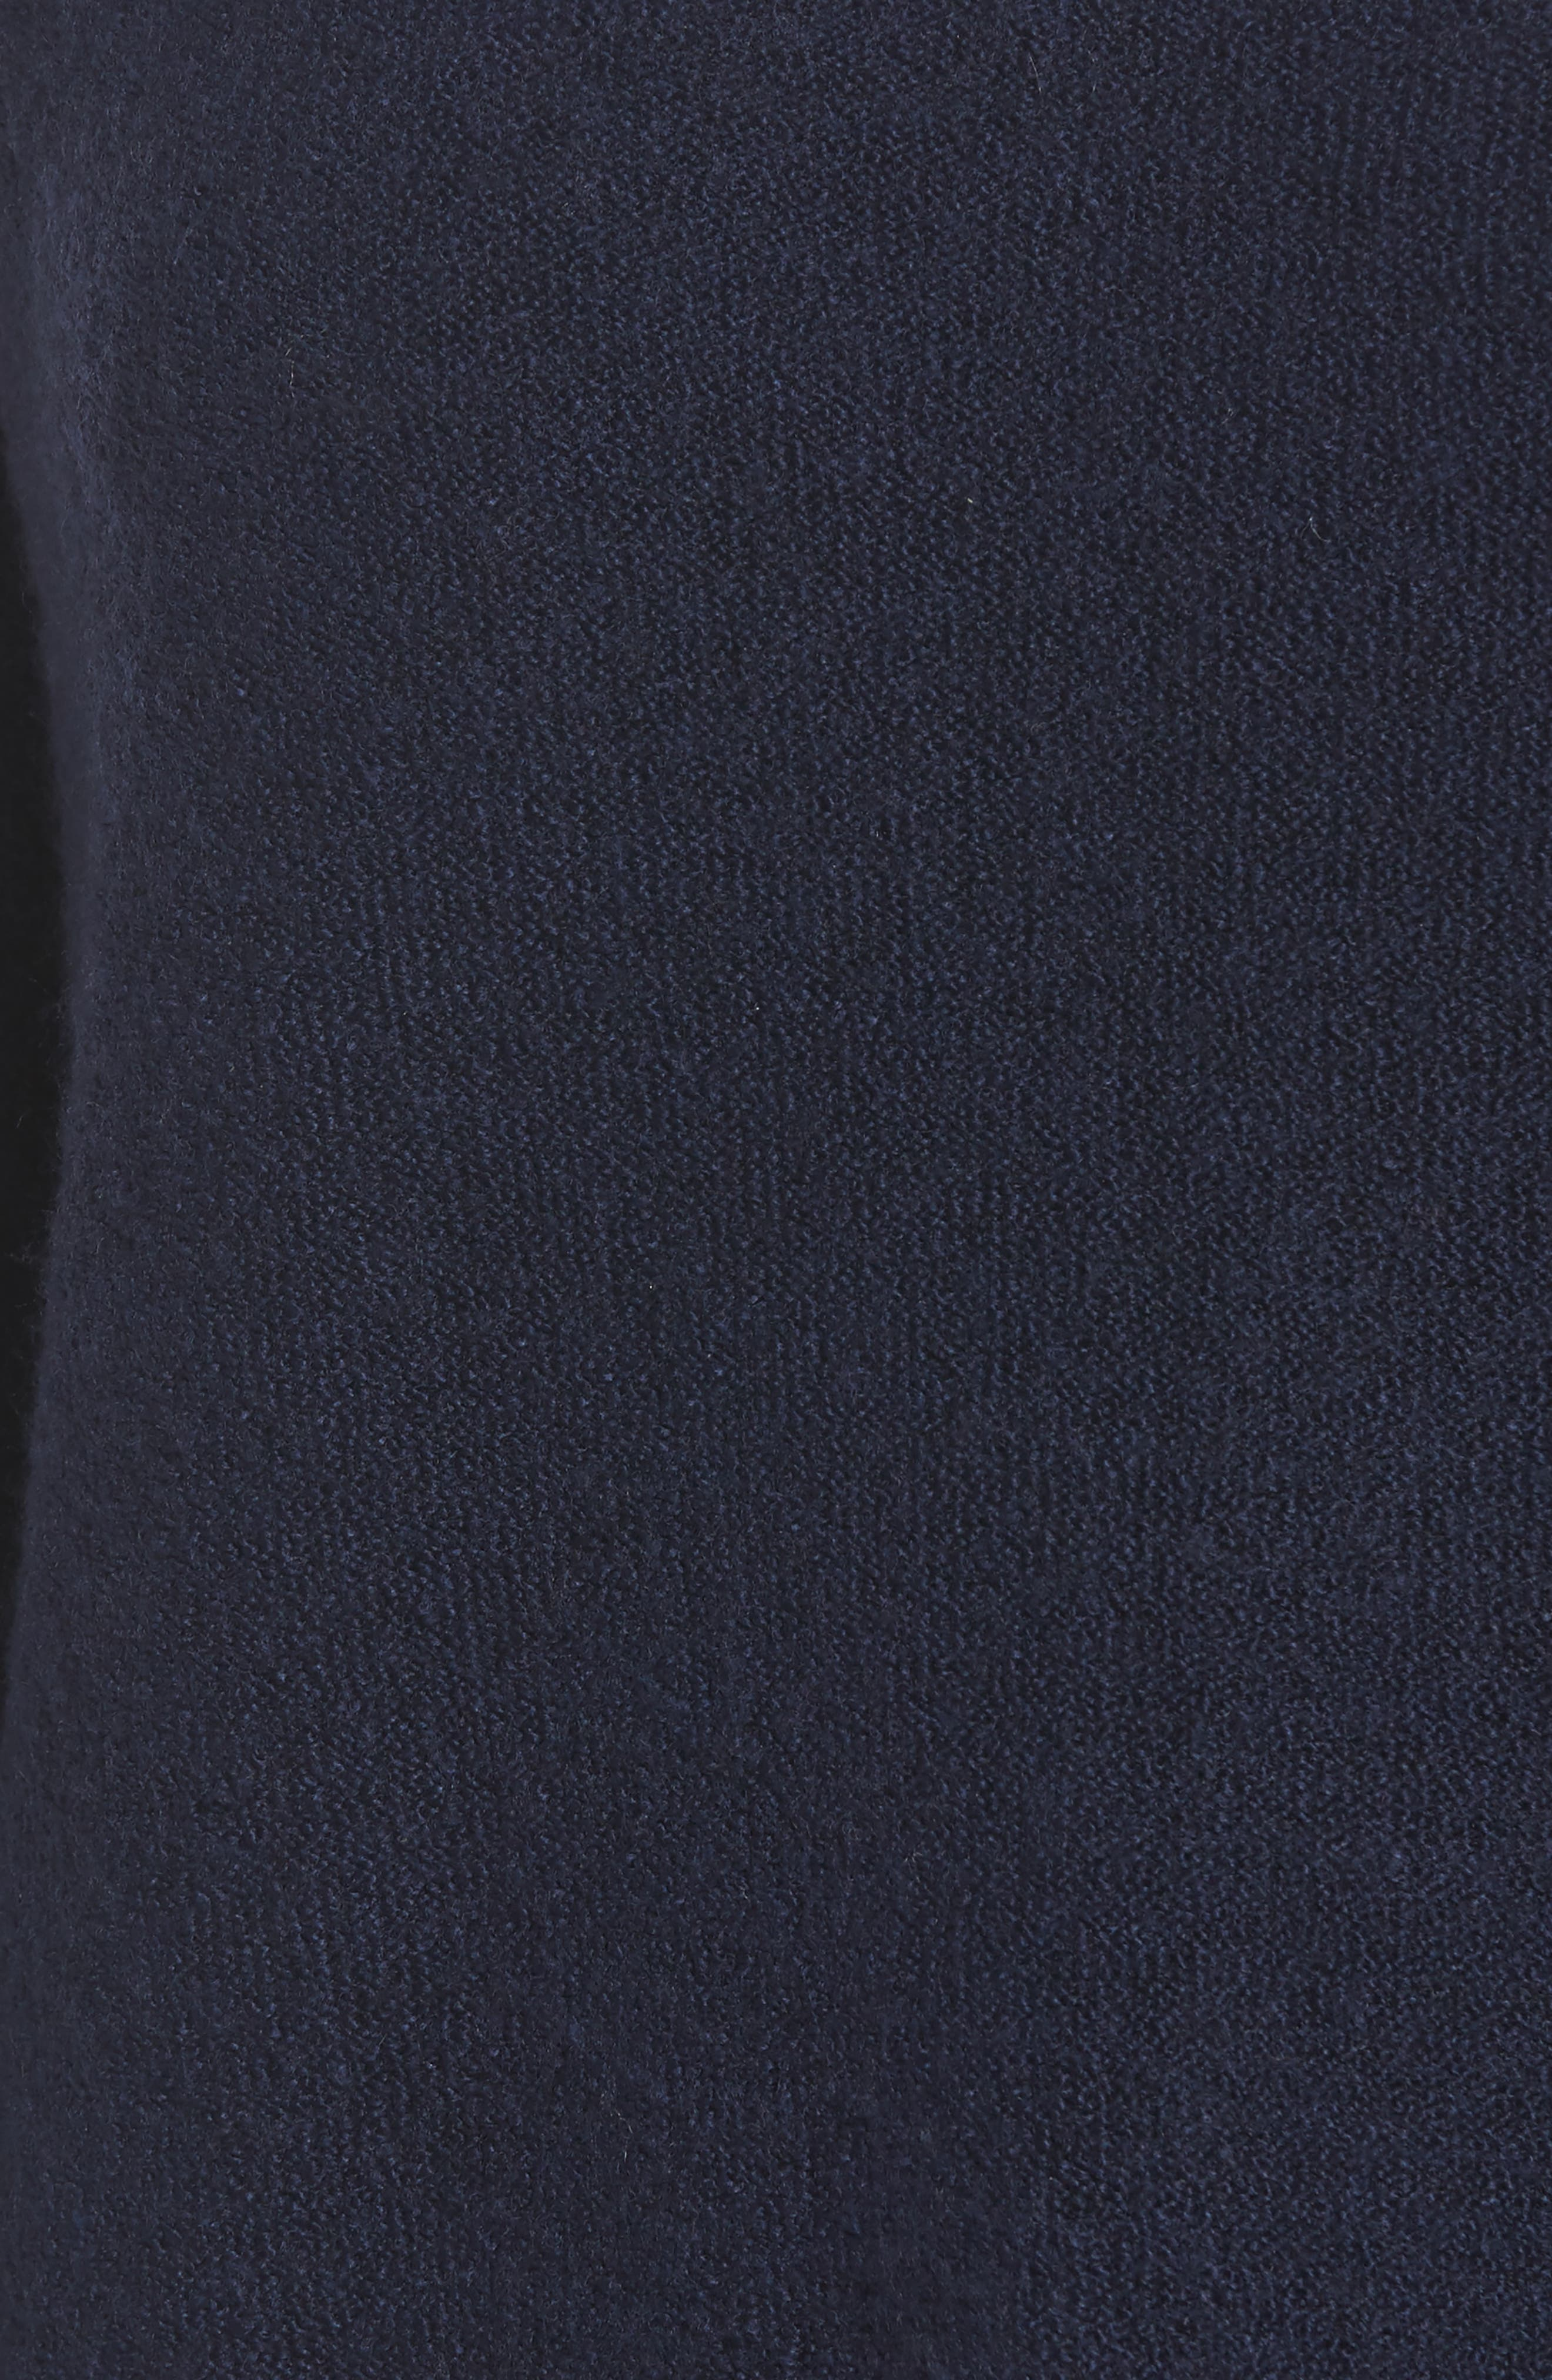 Button Back Sweater,                             Alternate thumbnail 5, color,                             410